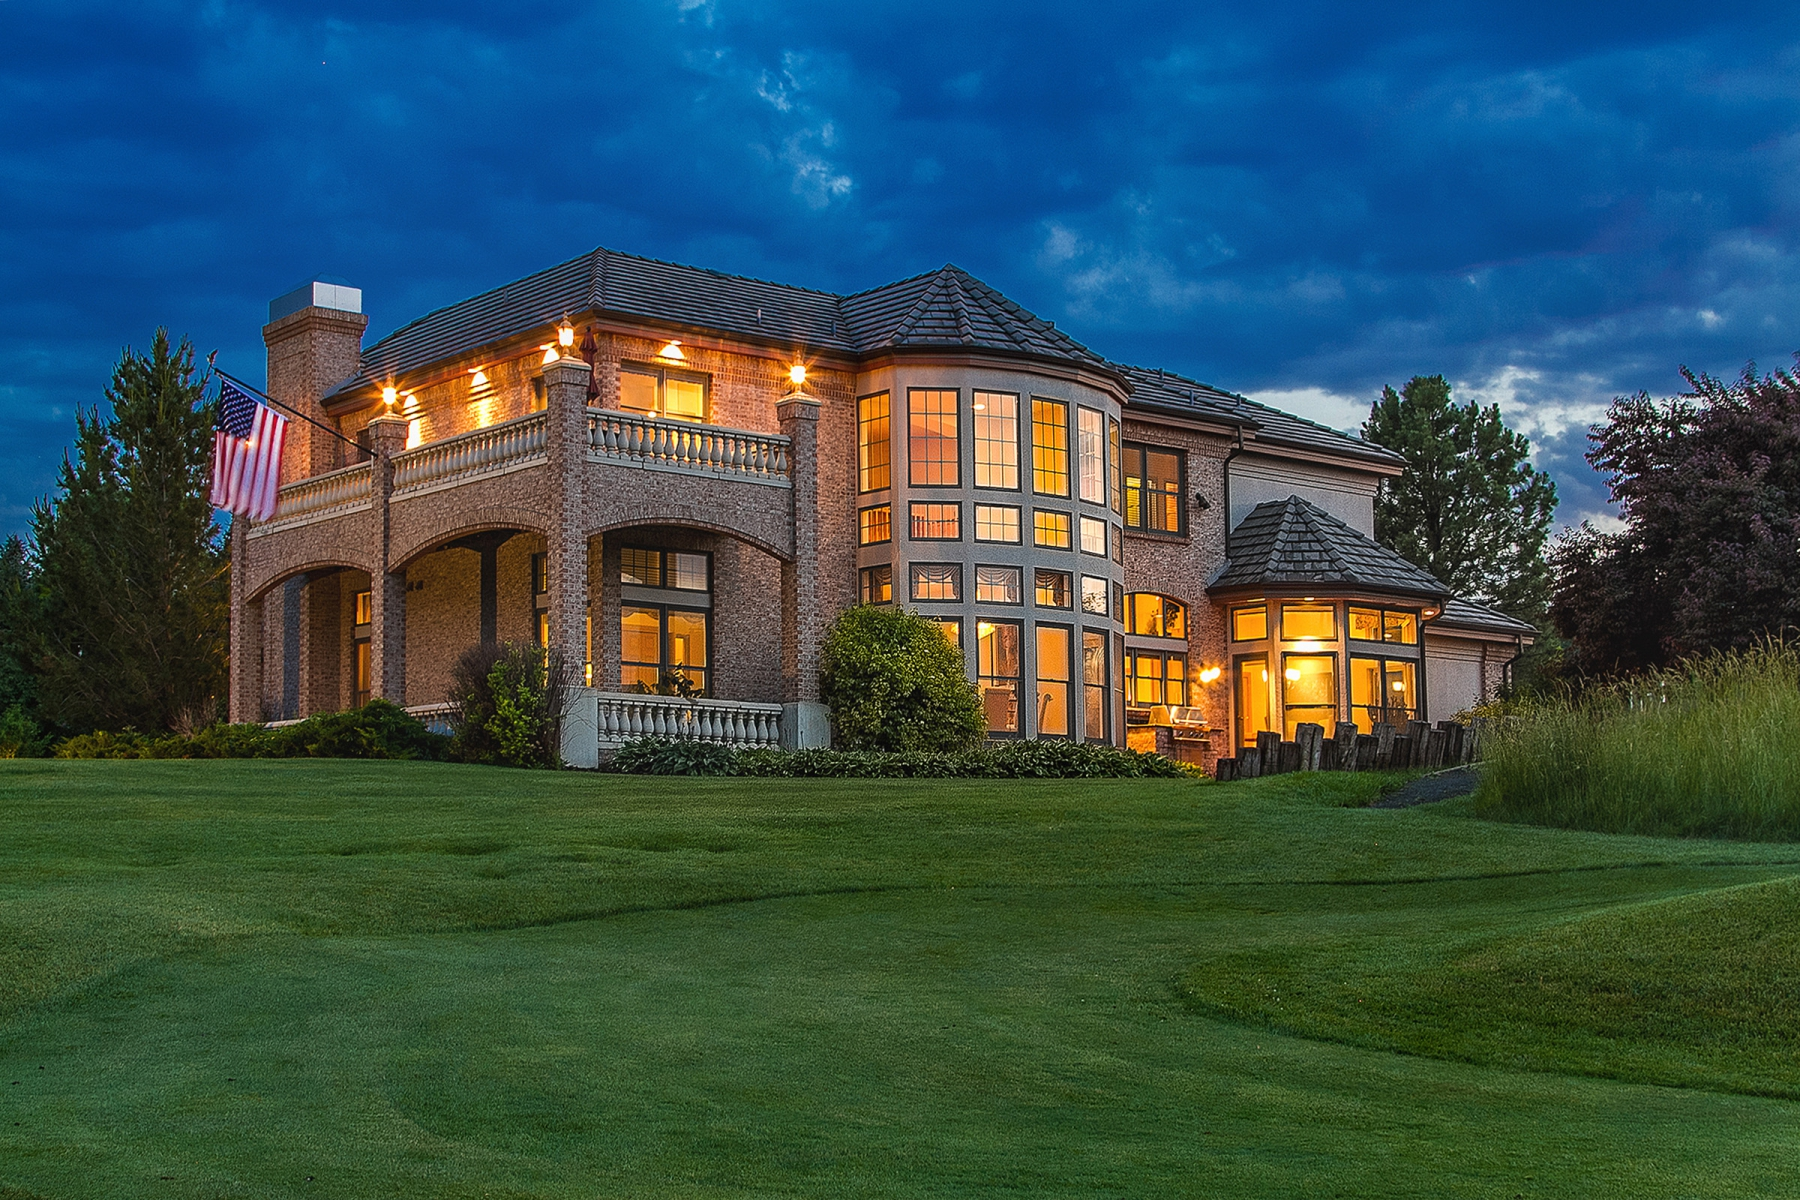 Single Family Home for Sale at Premier site in Glenmoor Country Club overlooking the ponds and golf course 70 Glenmoor Drive Cherry Hills Village, Colorado 80113 United States